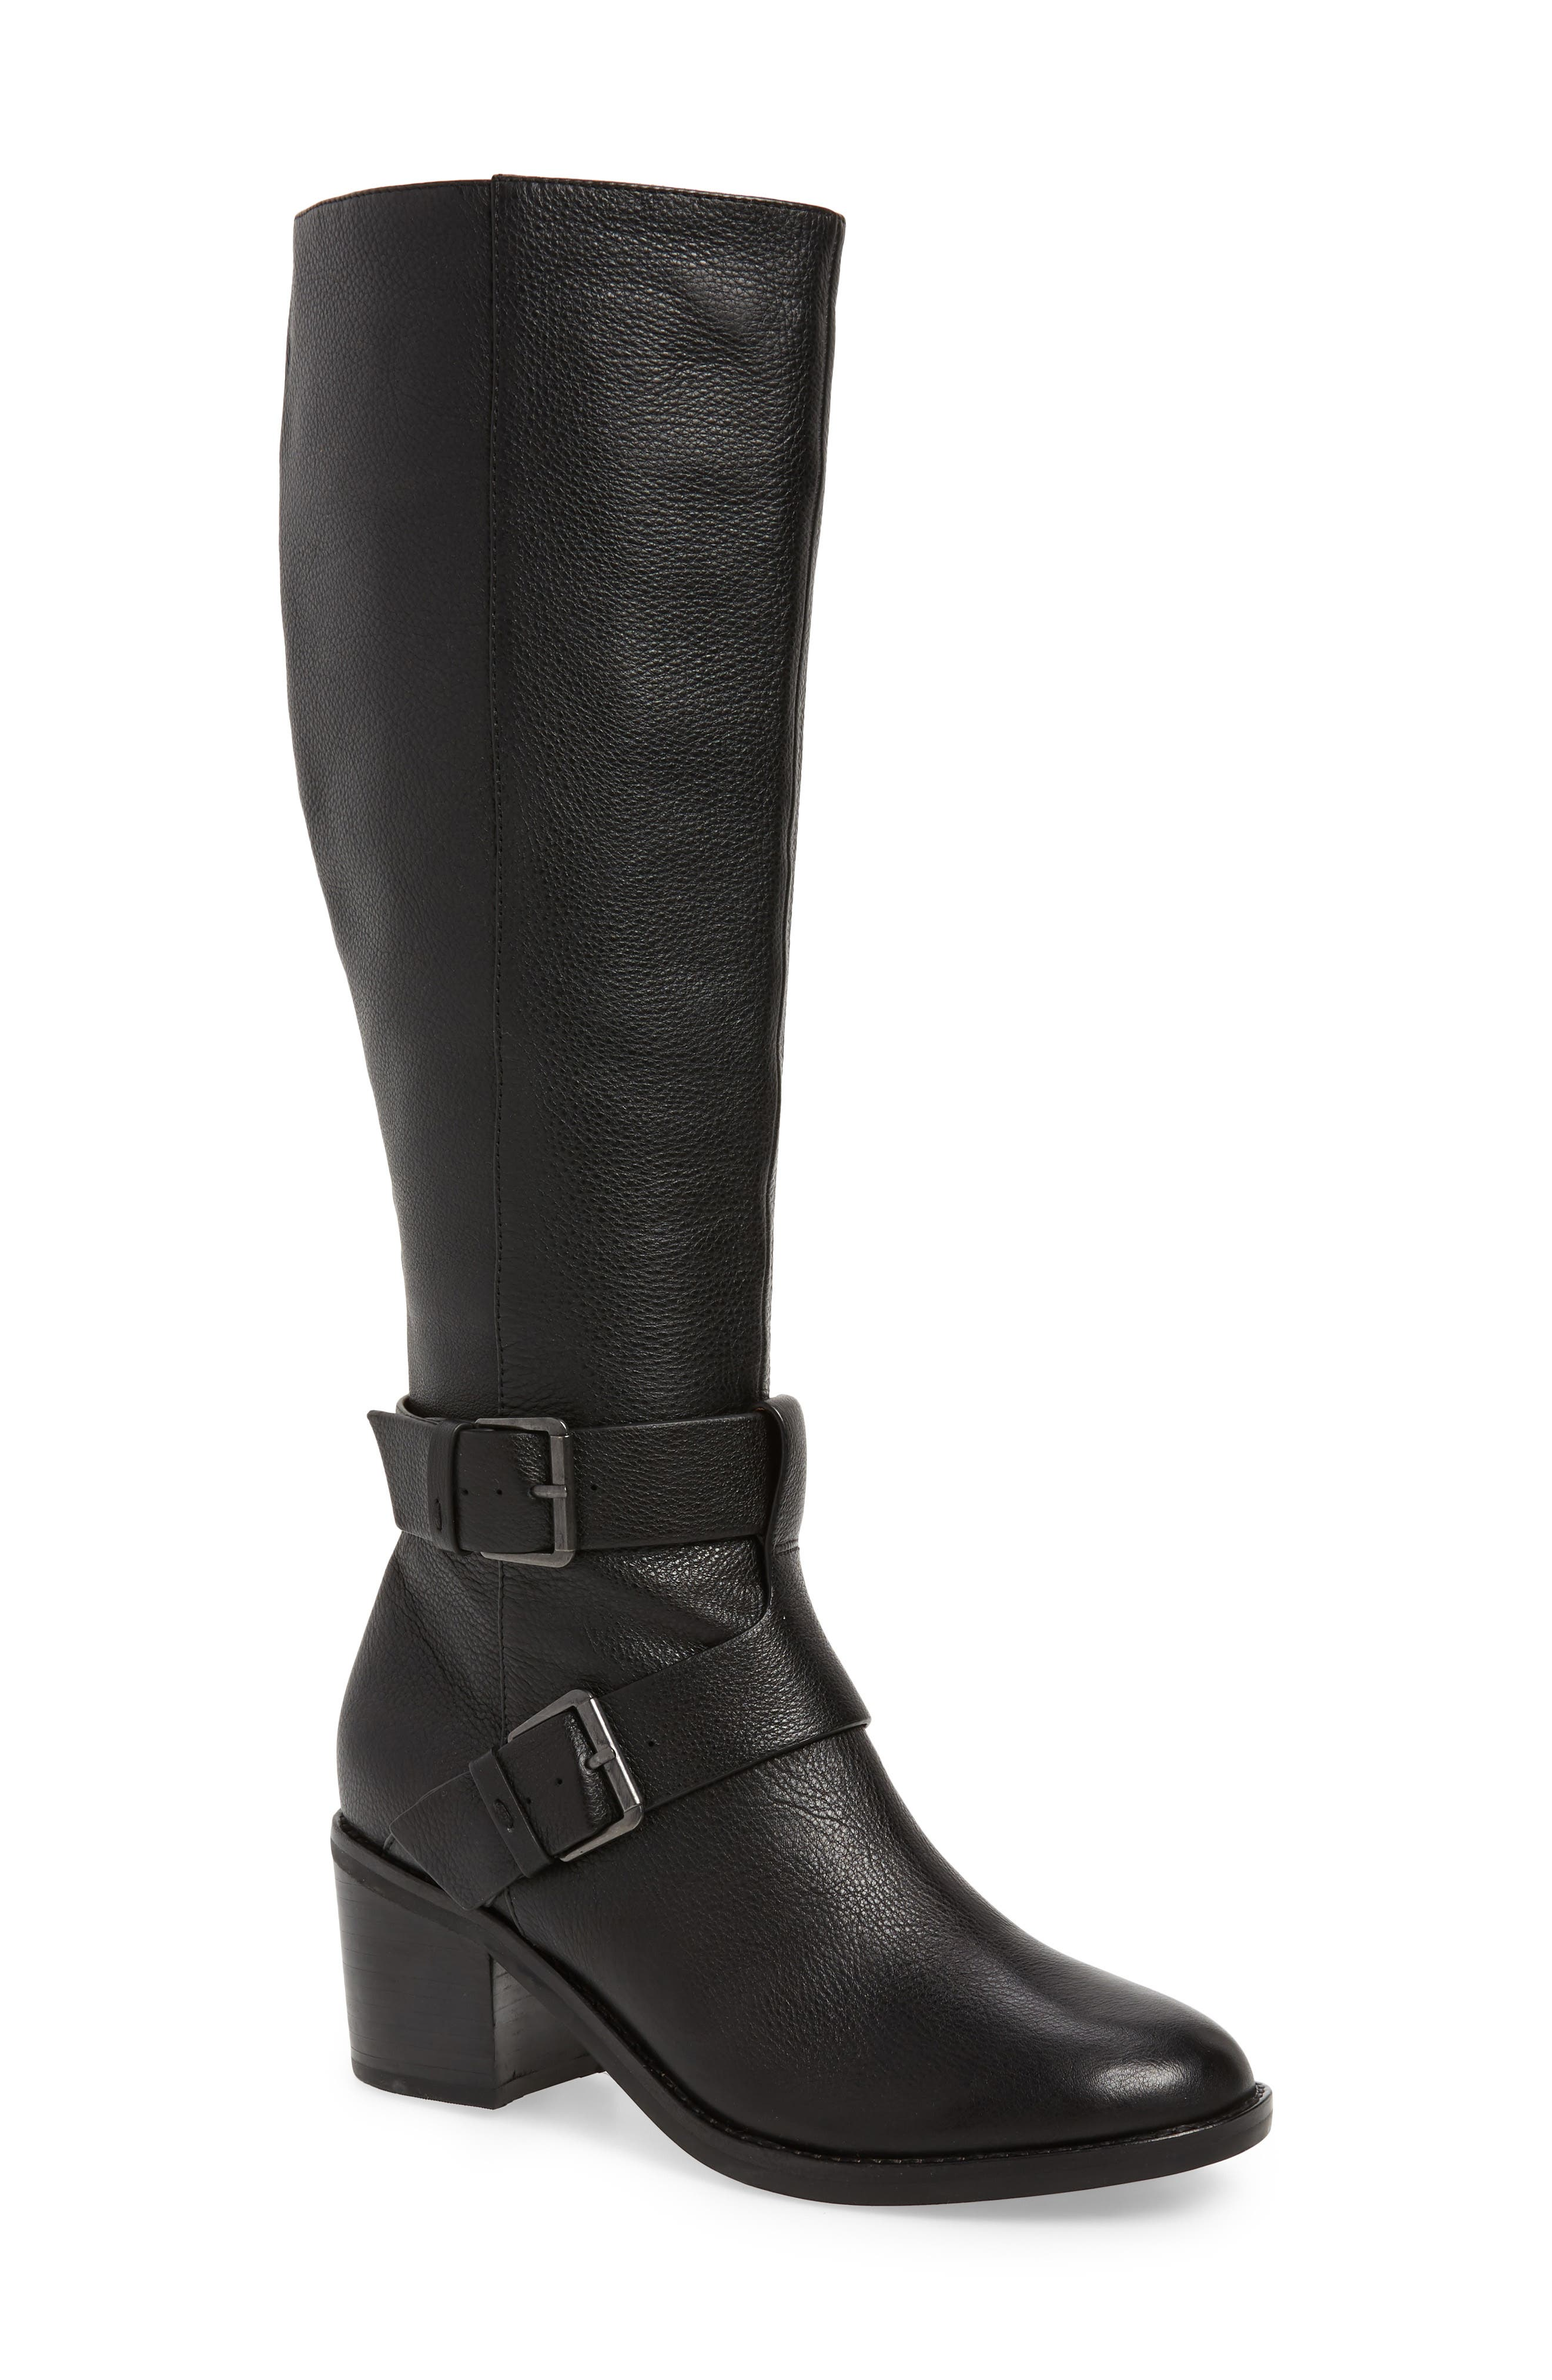 GENTLE SOULS BY KENNETH COLE, Verona Knee-High Riding Boot, Main thumbnail 1, color, 001